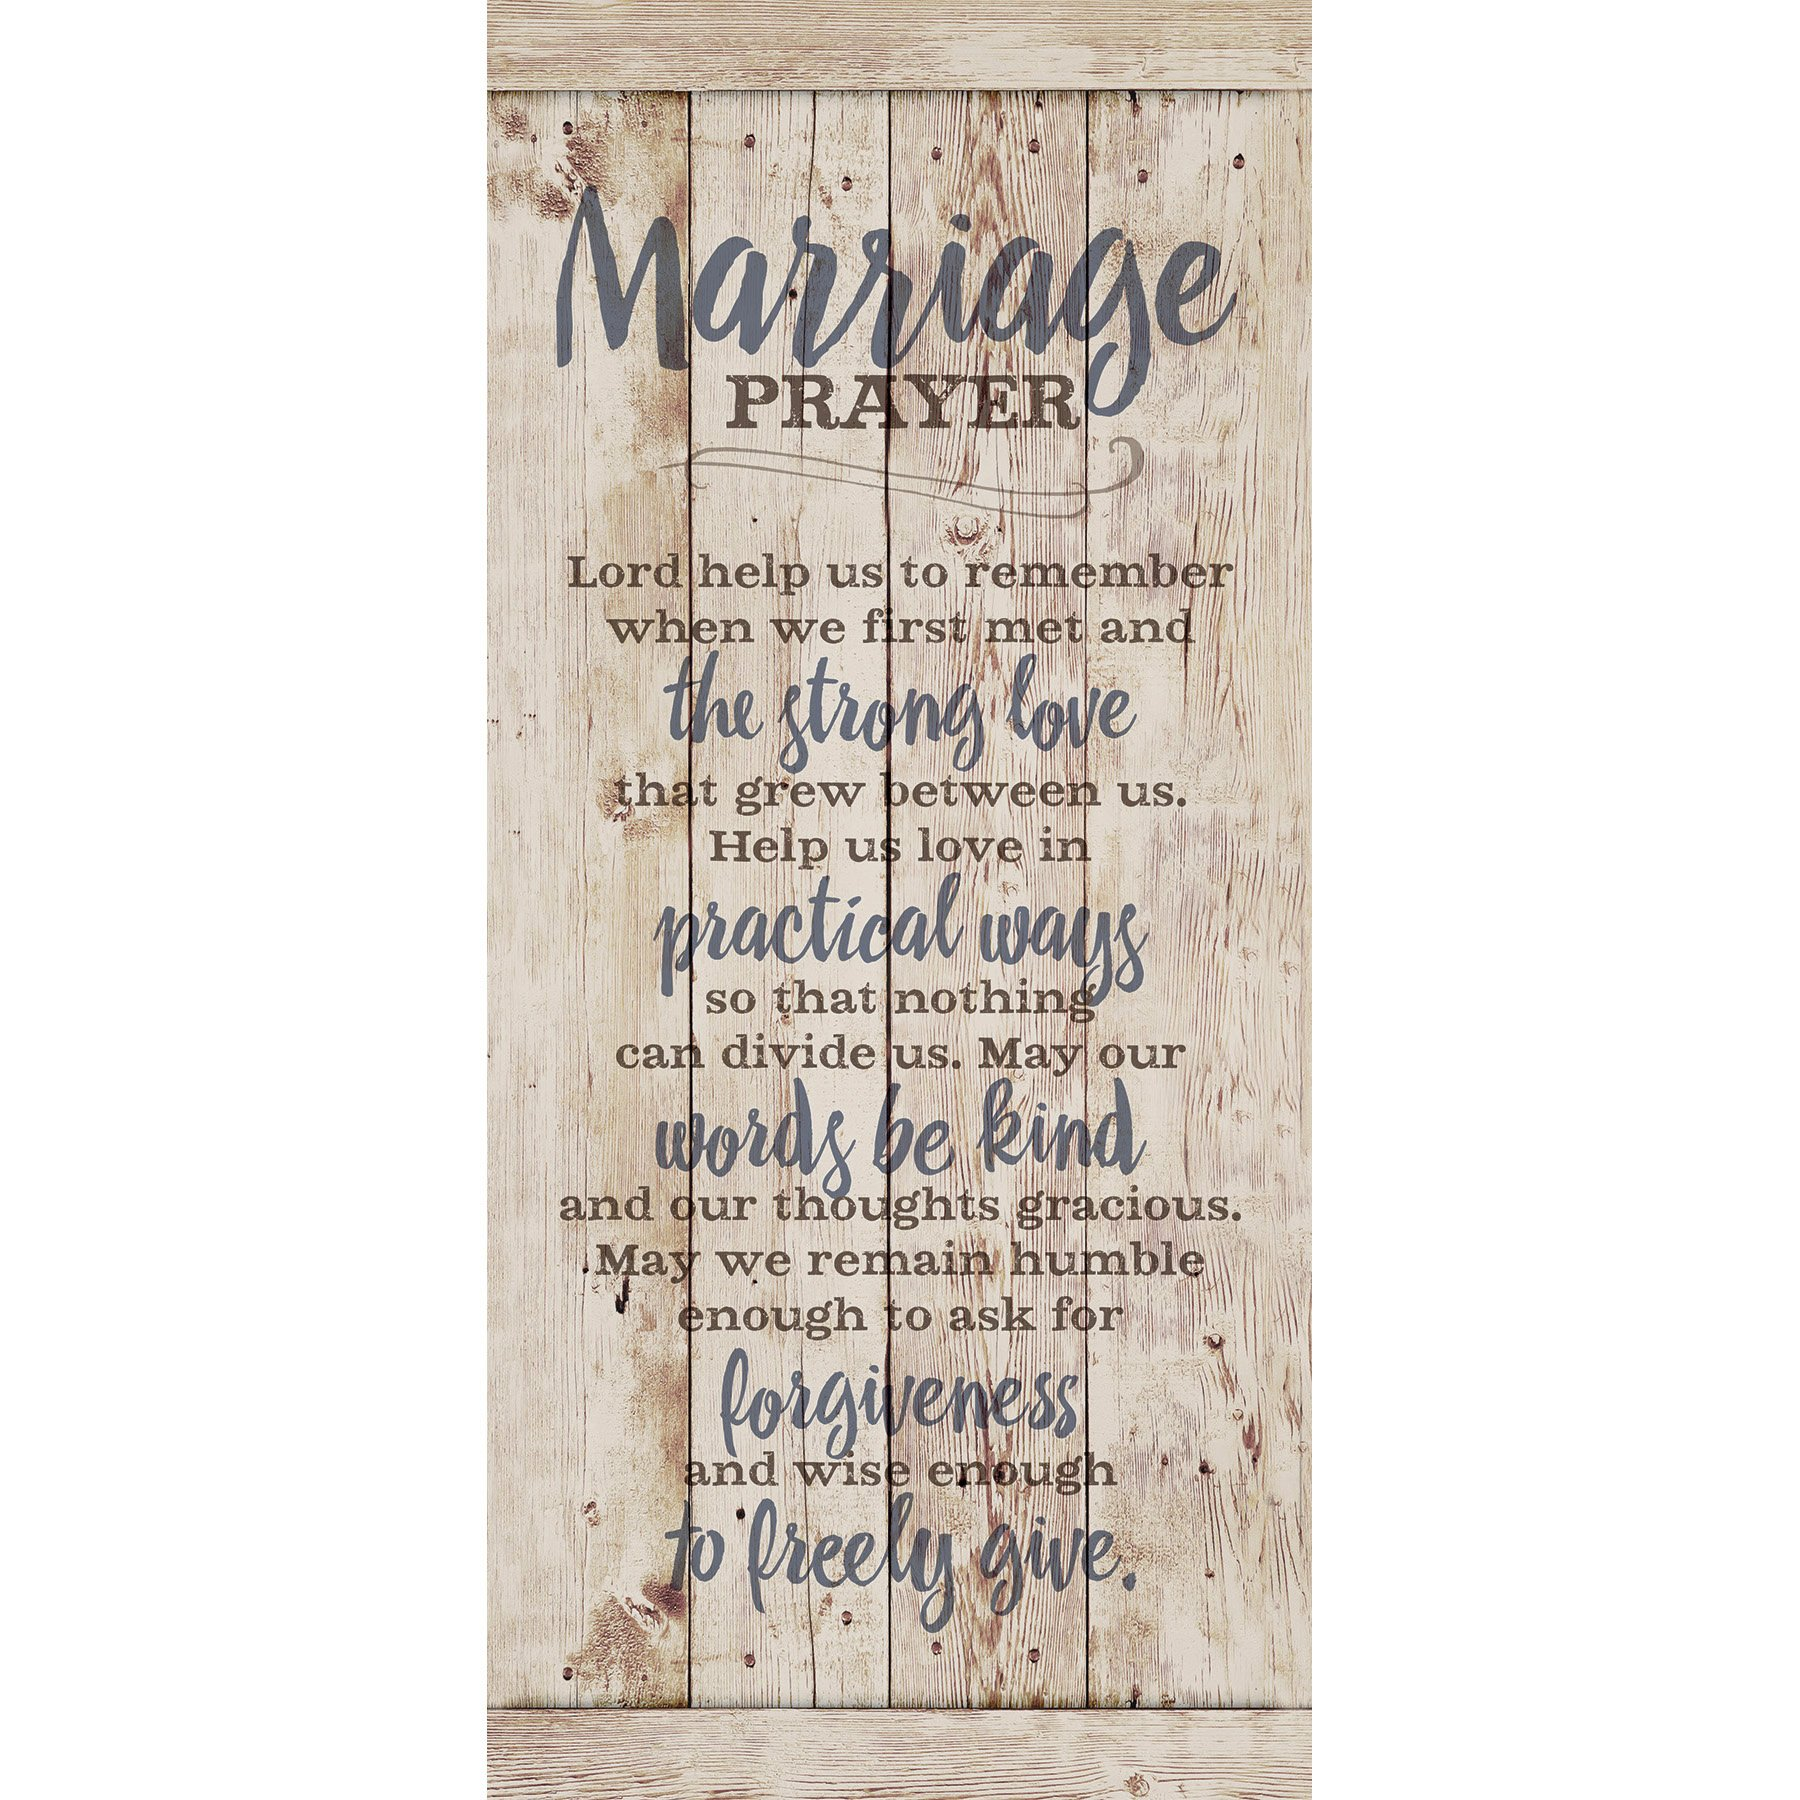 Marriage Prayer Wood Plaque Inspiring Quote 5.5x12 - Classy Vertical Frame Wall Hanging Decoration | Lord, Help us to Remember When we First met | Christian Family Religious Home Decor Saying by Dexsa